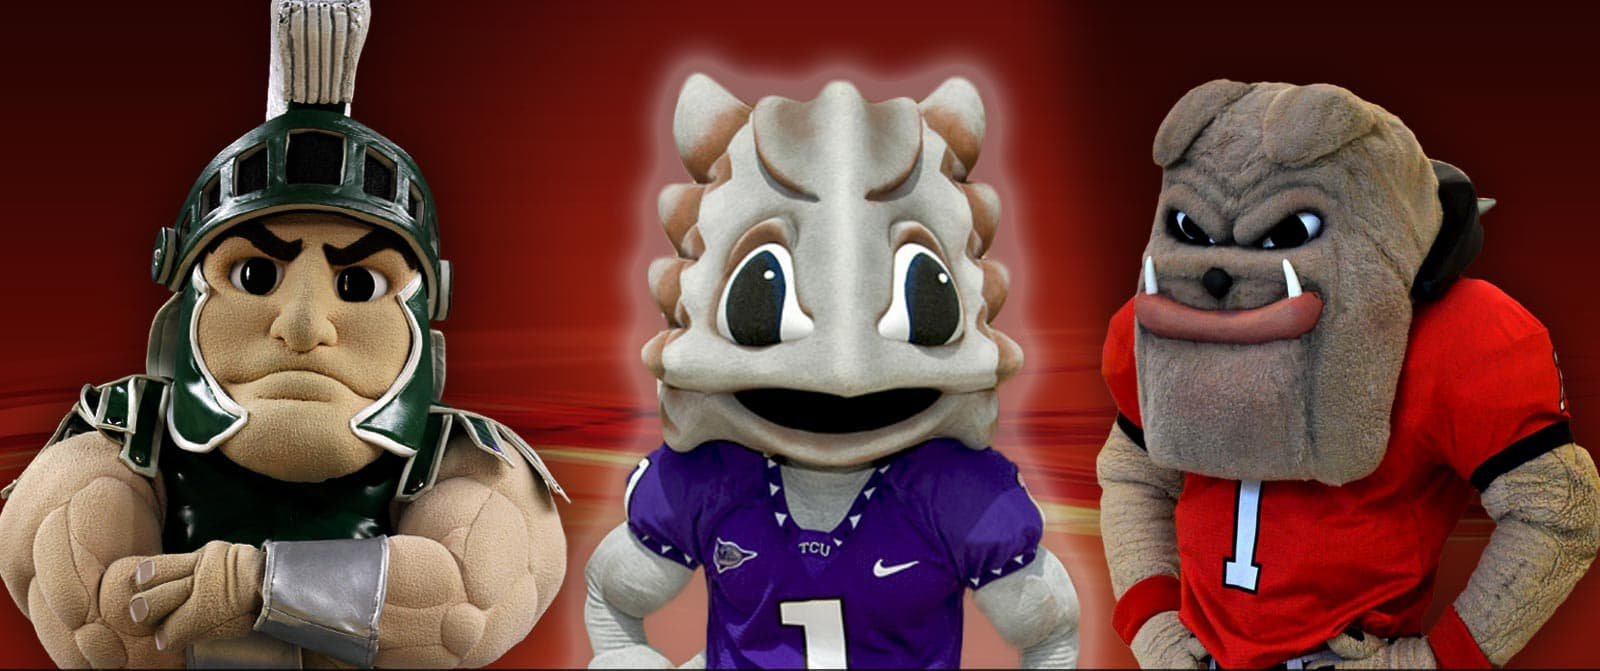 Image of three college mascots, with the far right and ludicrous mascot highlighted